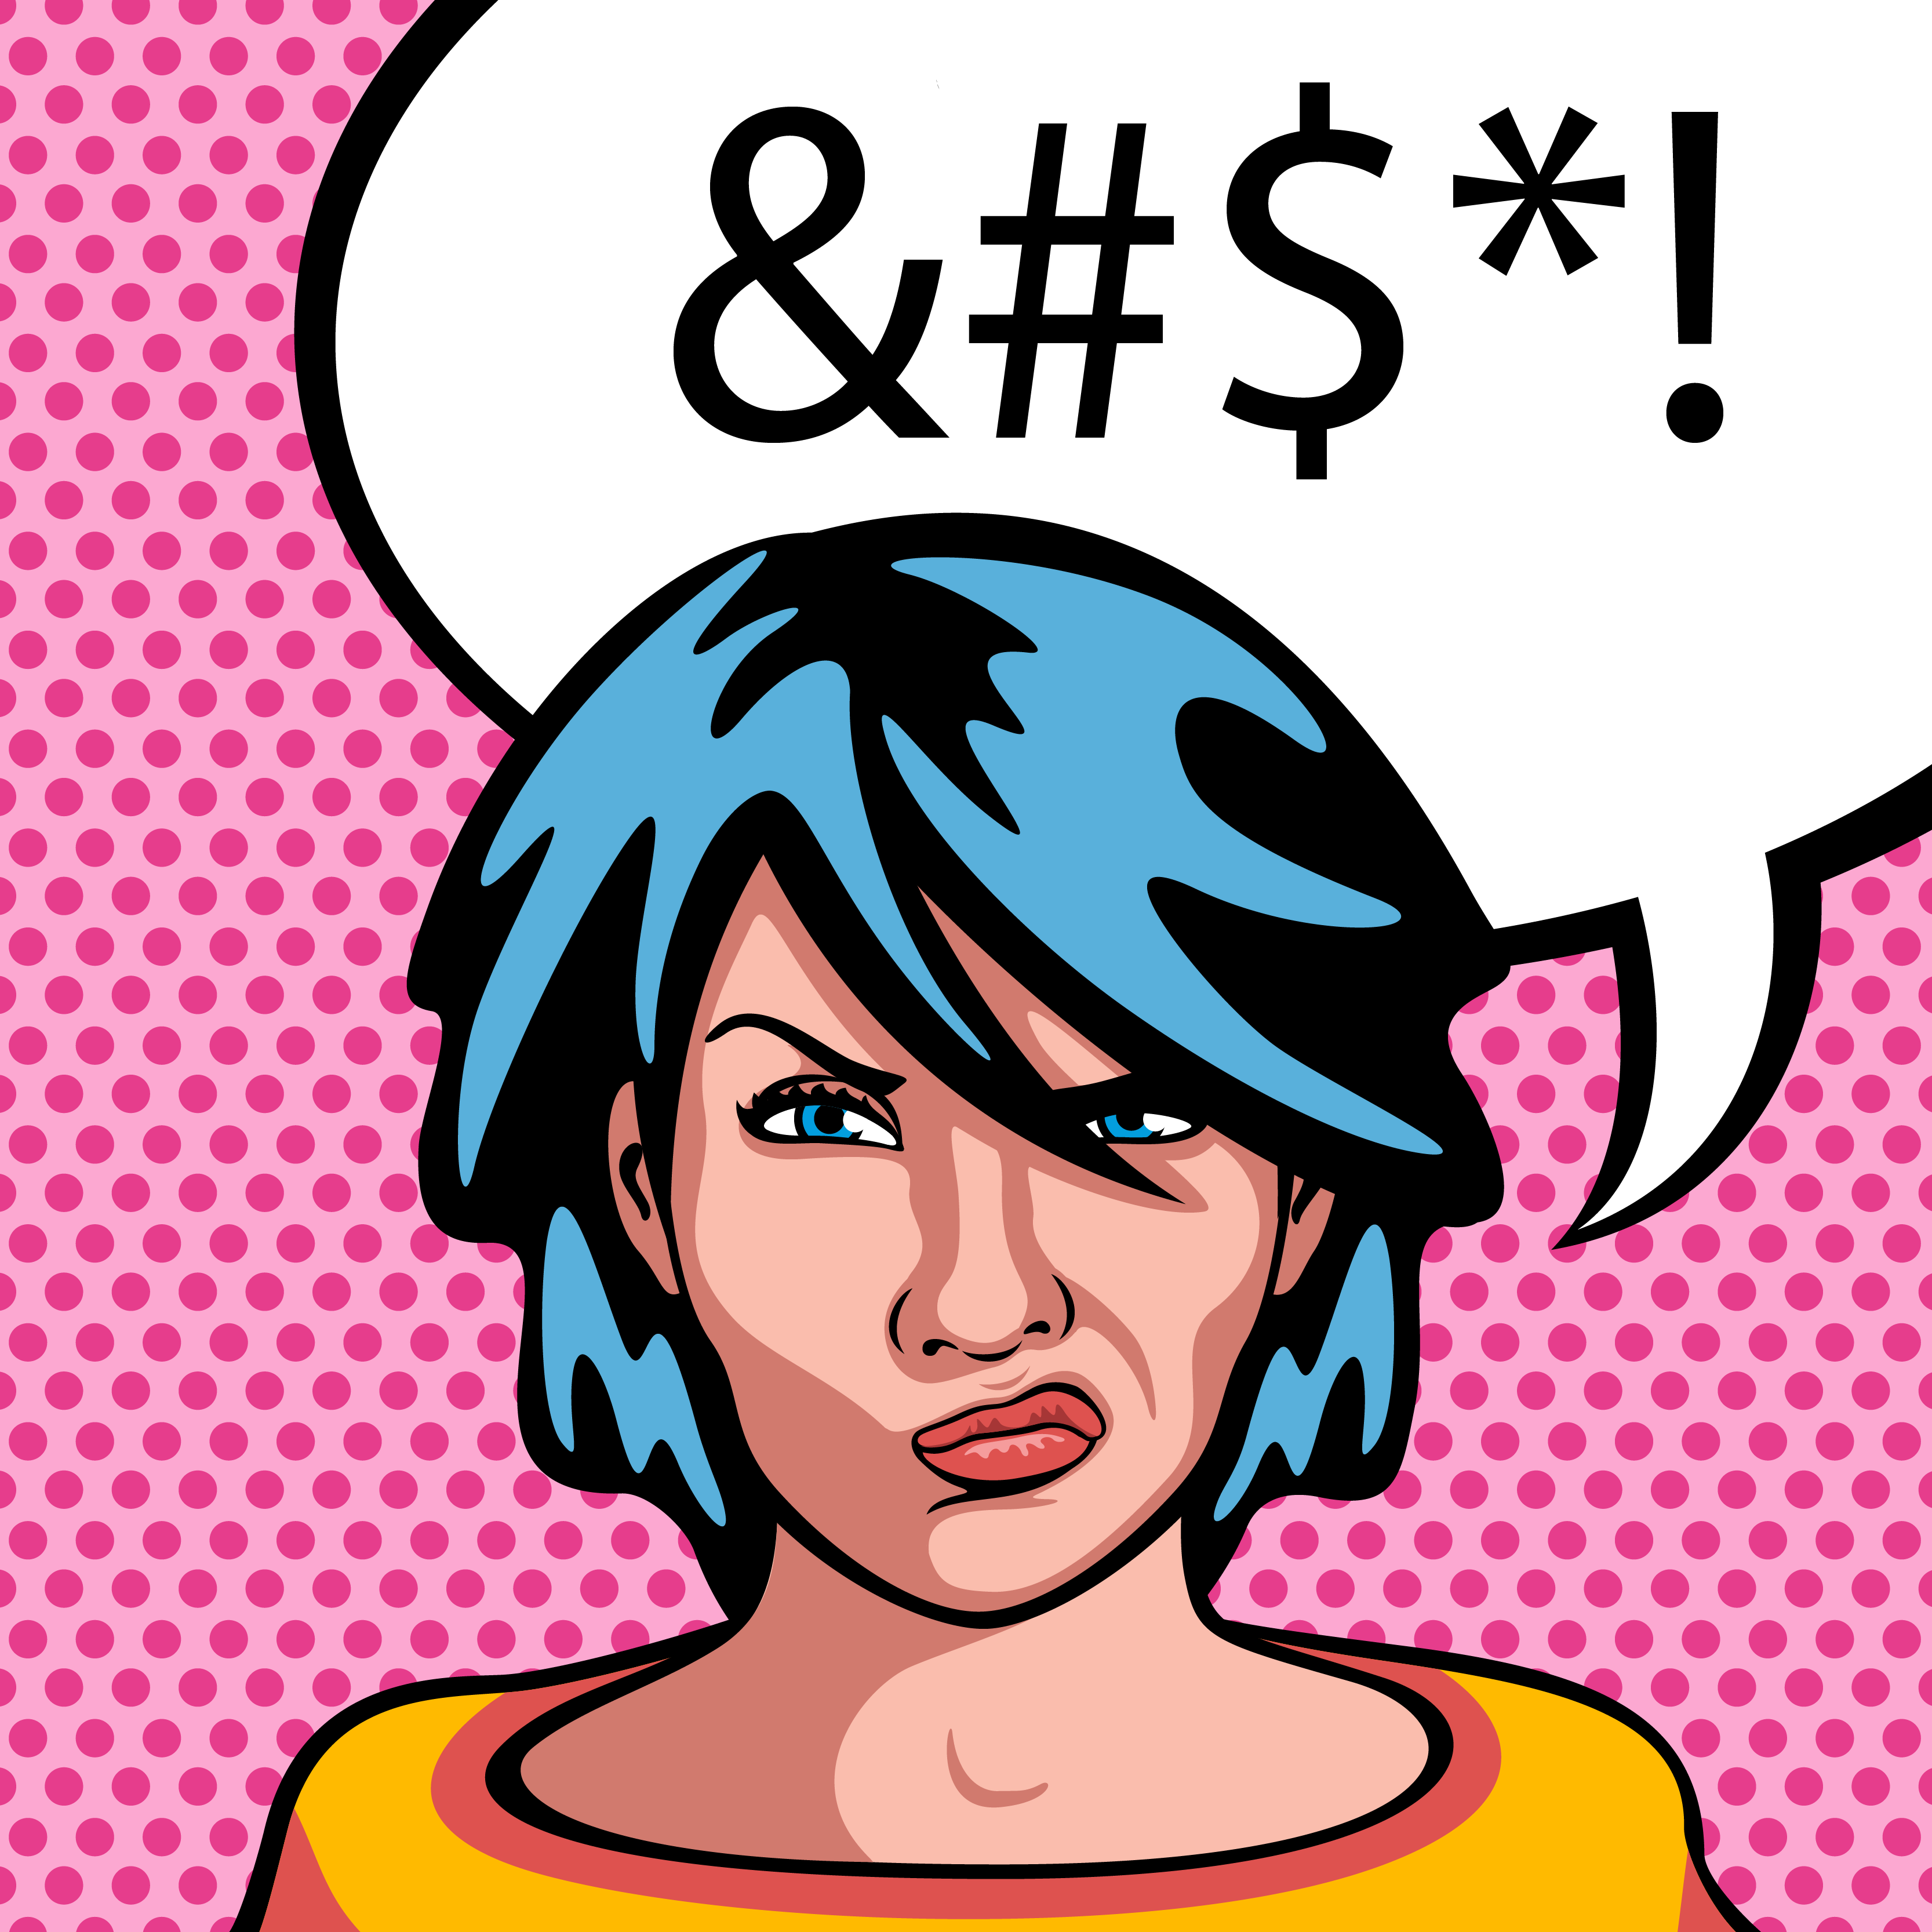 Comic book style angry woman with word bubble